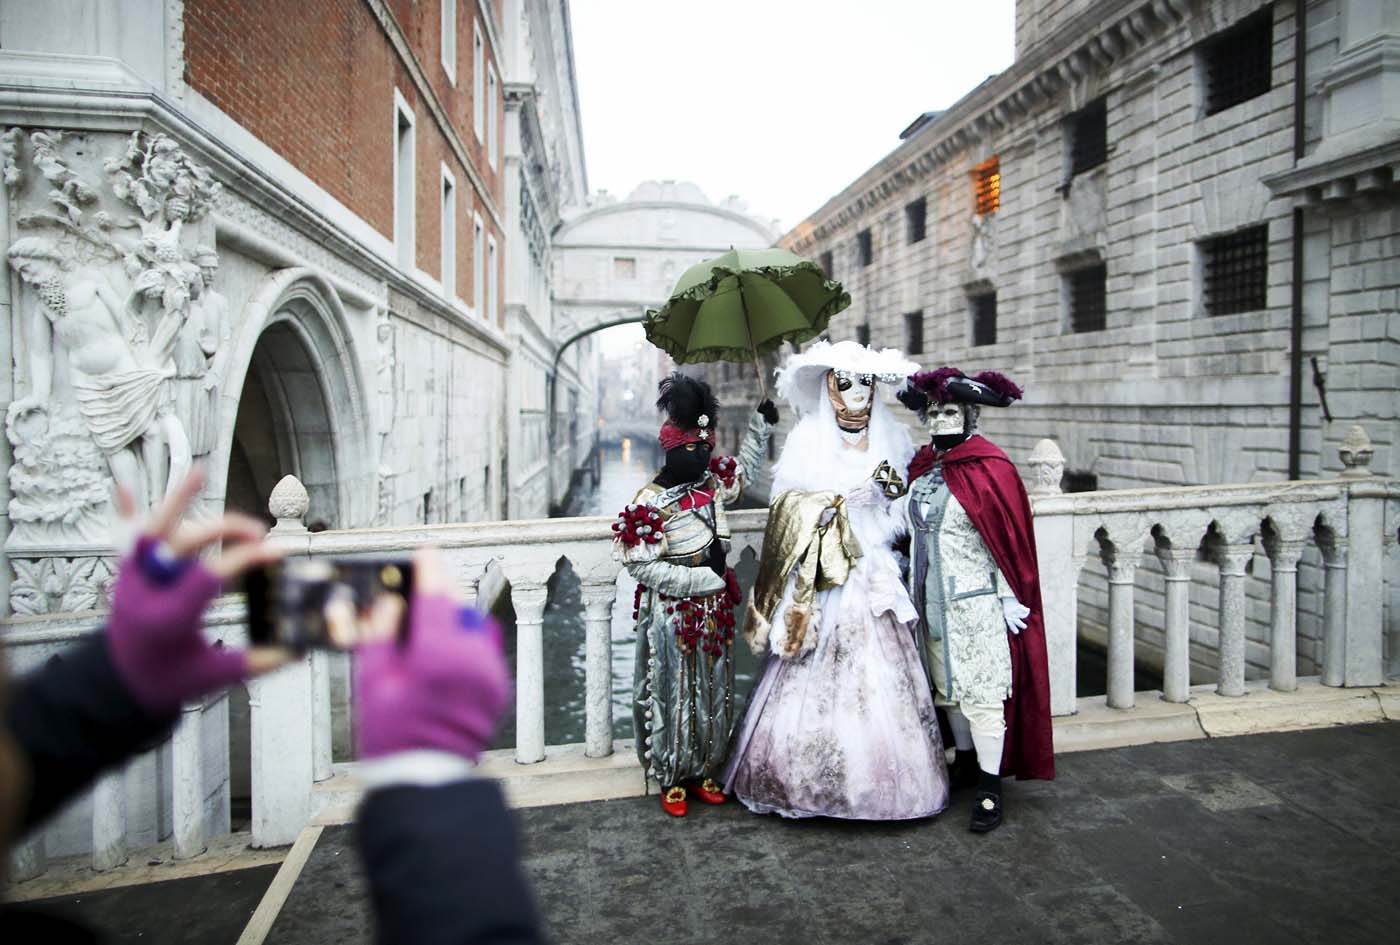 A tourist takes a picture of masked revellers (R) standing in front of the Ponte dei Sospiri (Bridge of Sighs) during the Venice Carnival January 30, 2016. REUTERS/Alessandro Bianchi